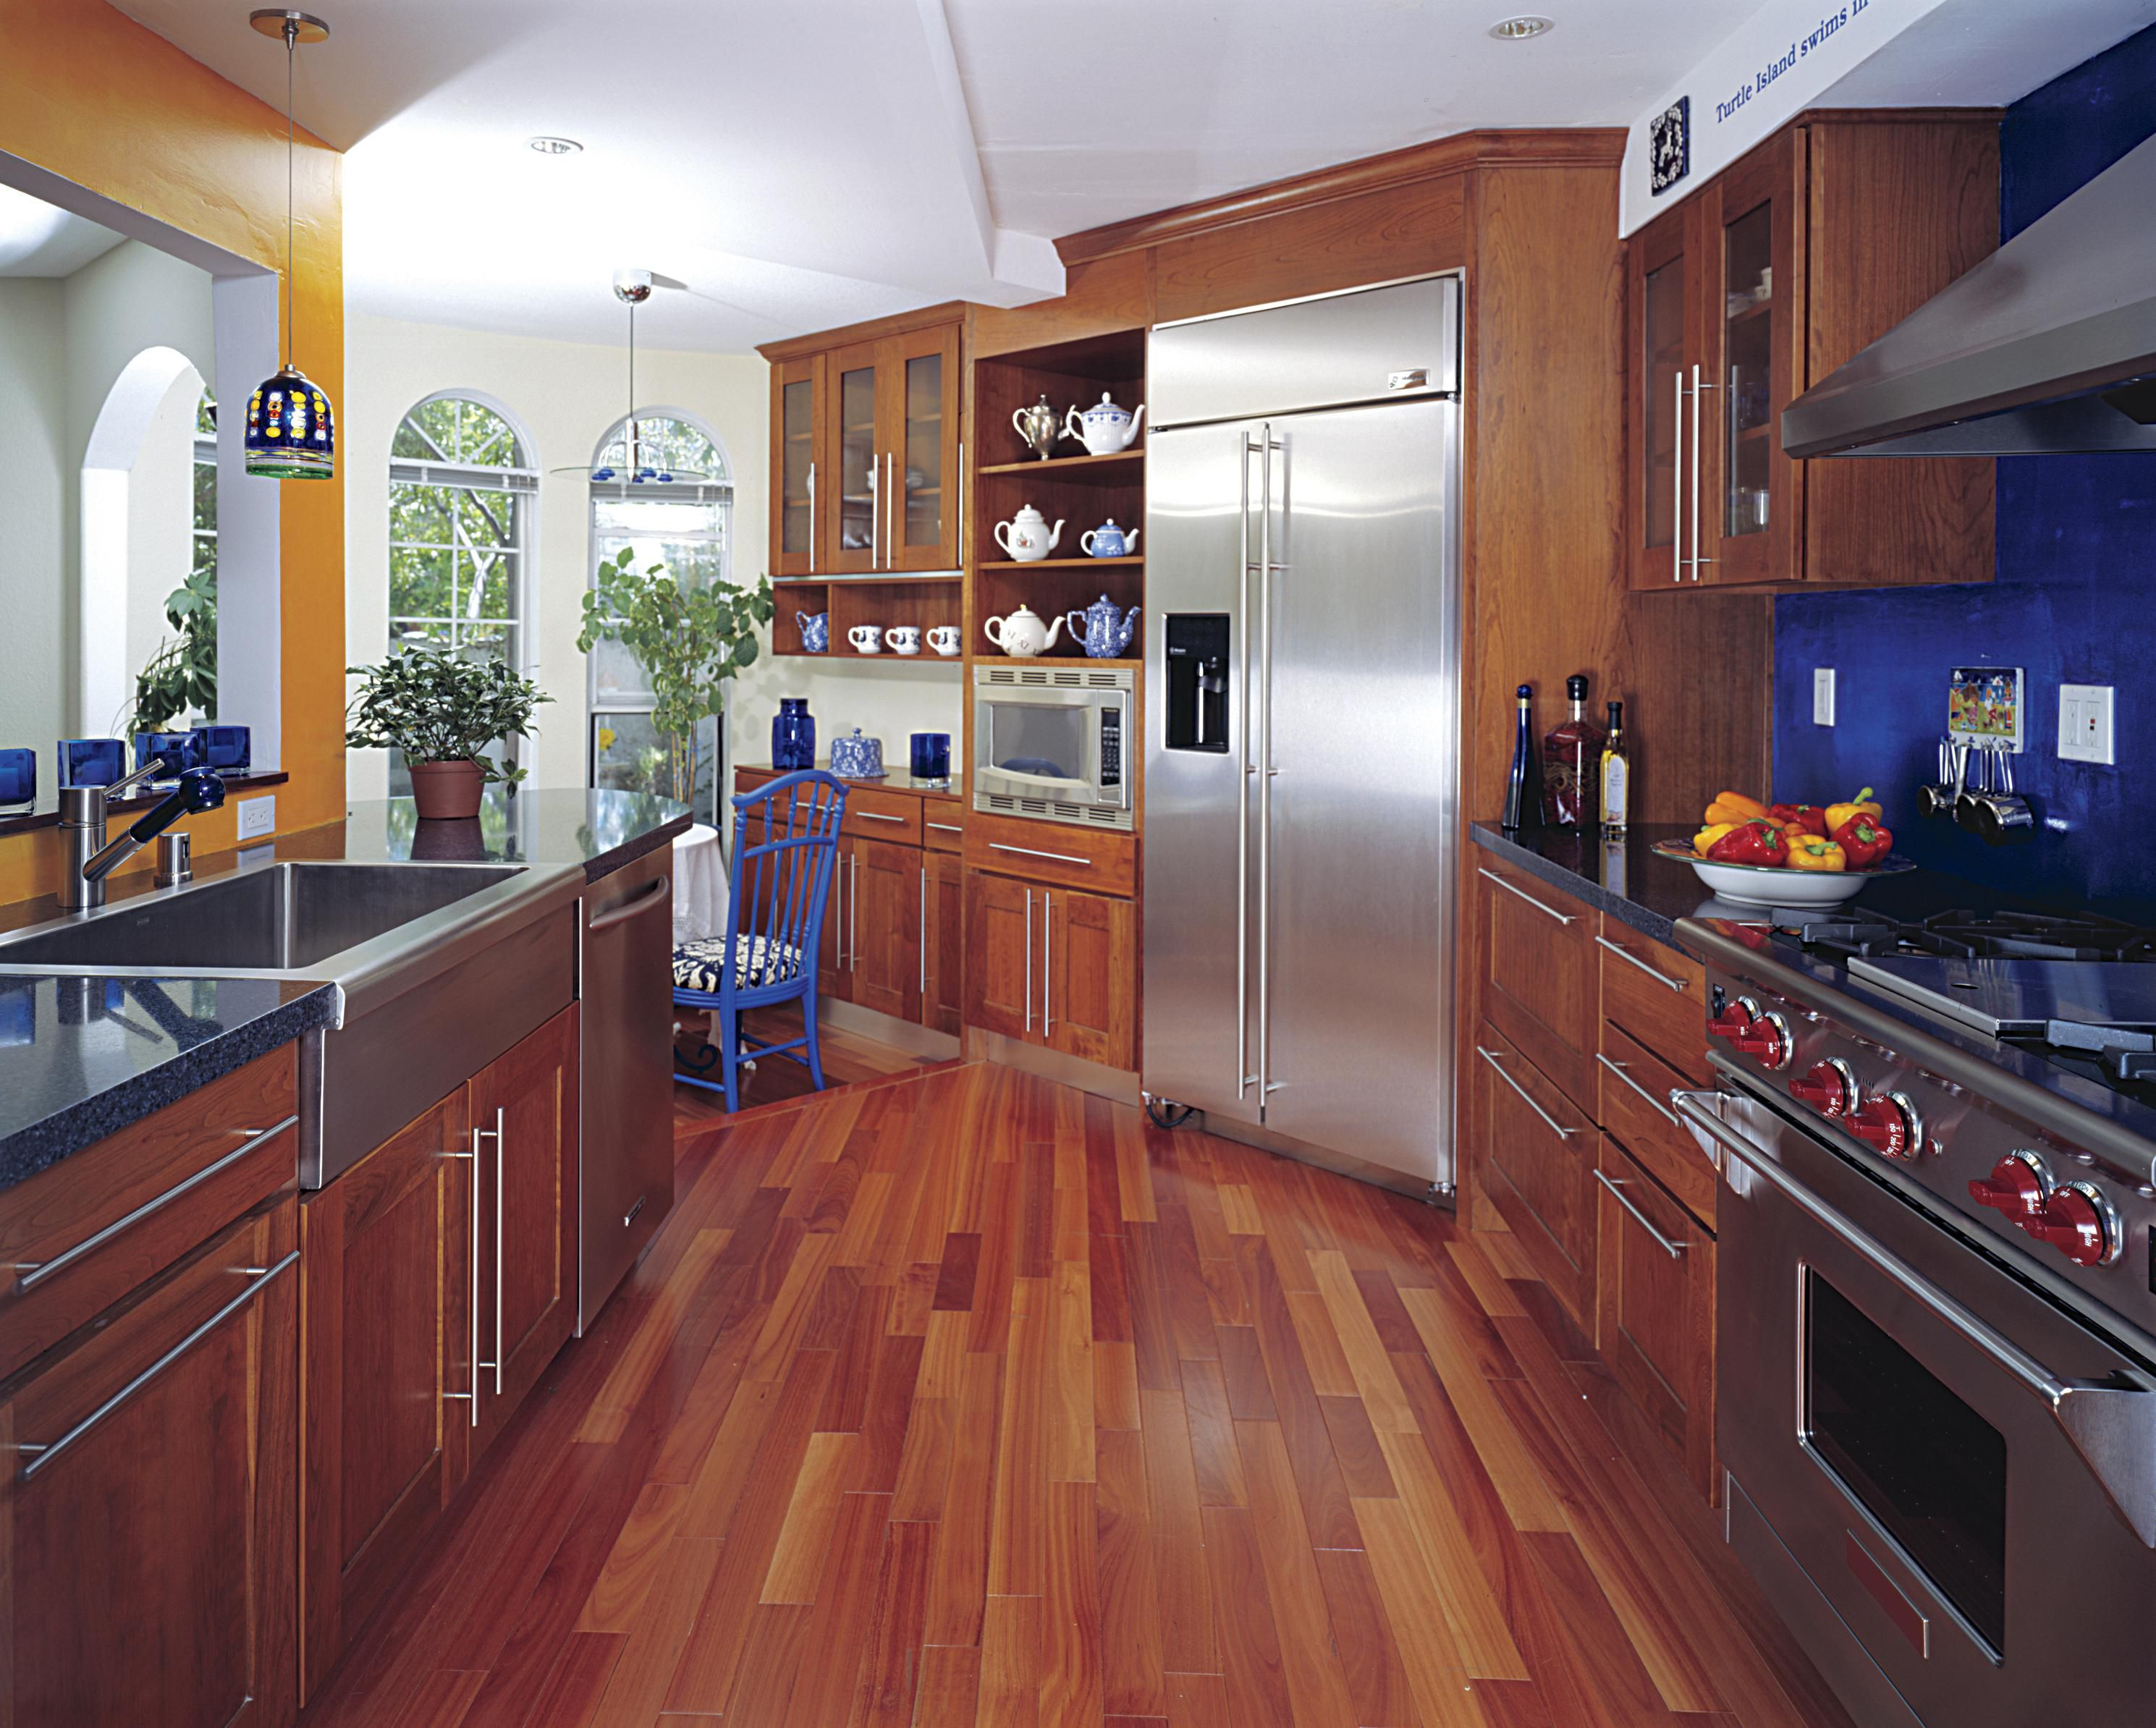 hardwood floor in a kitchen recommended or a bad idea - Laminate Kitchen Flooring